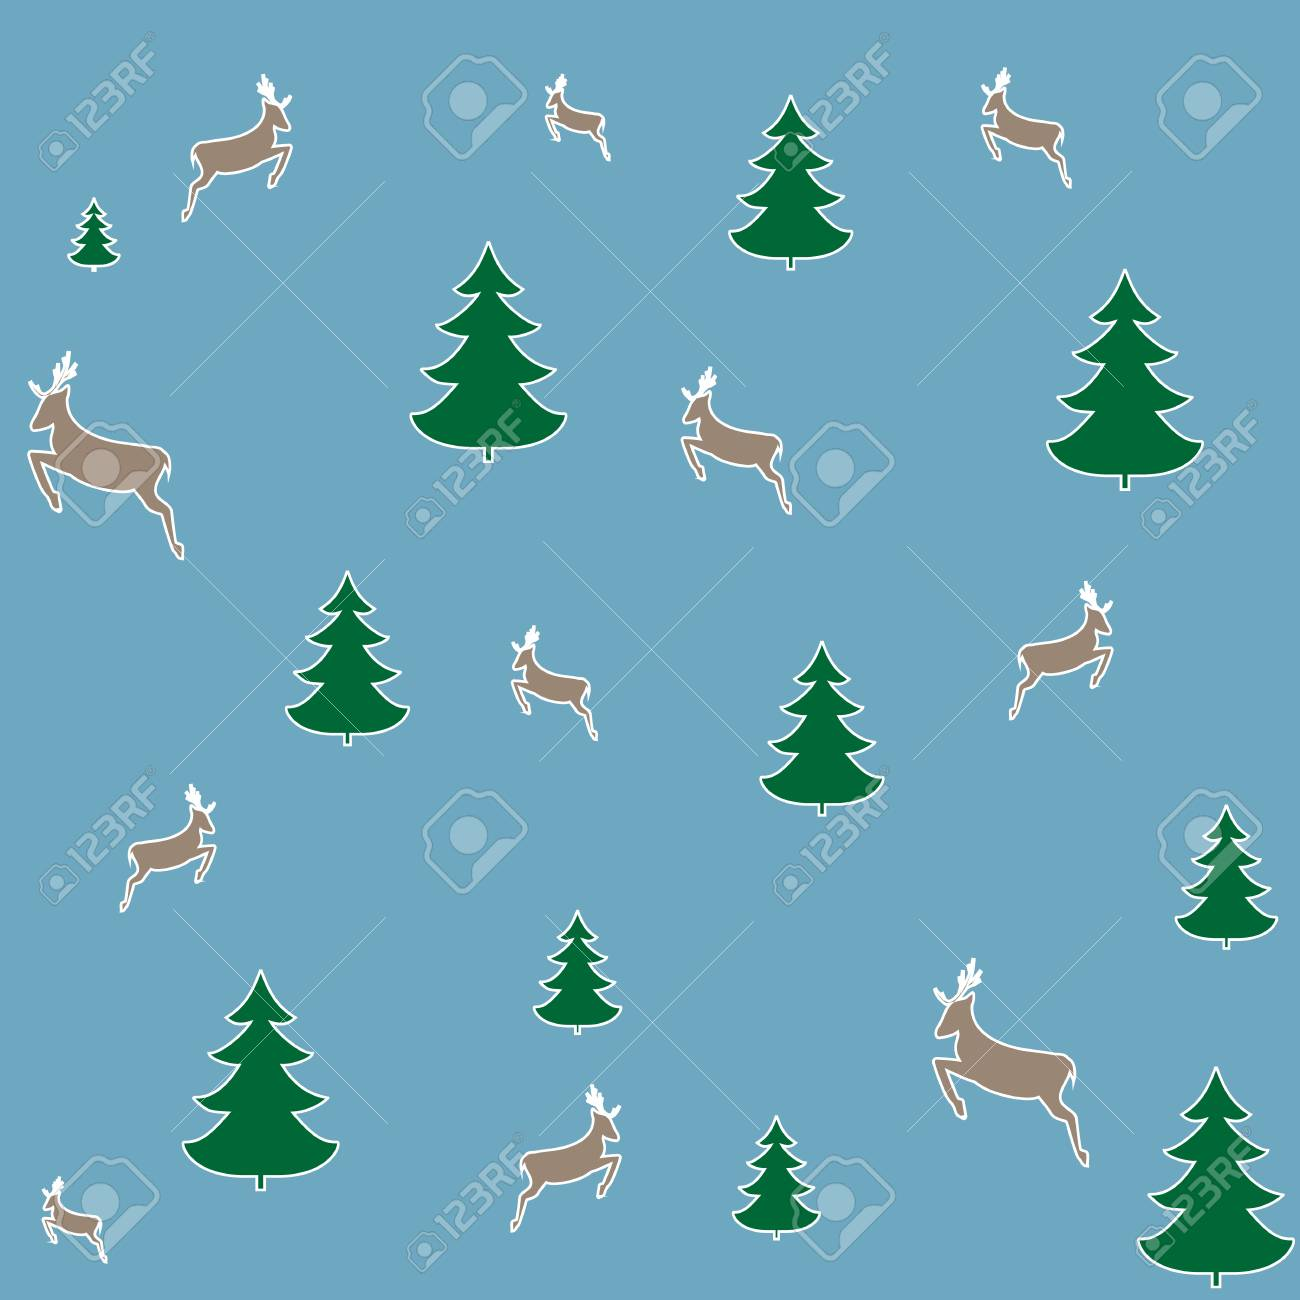 christmas tree and deer seamless pattern. fashion graphic background